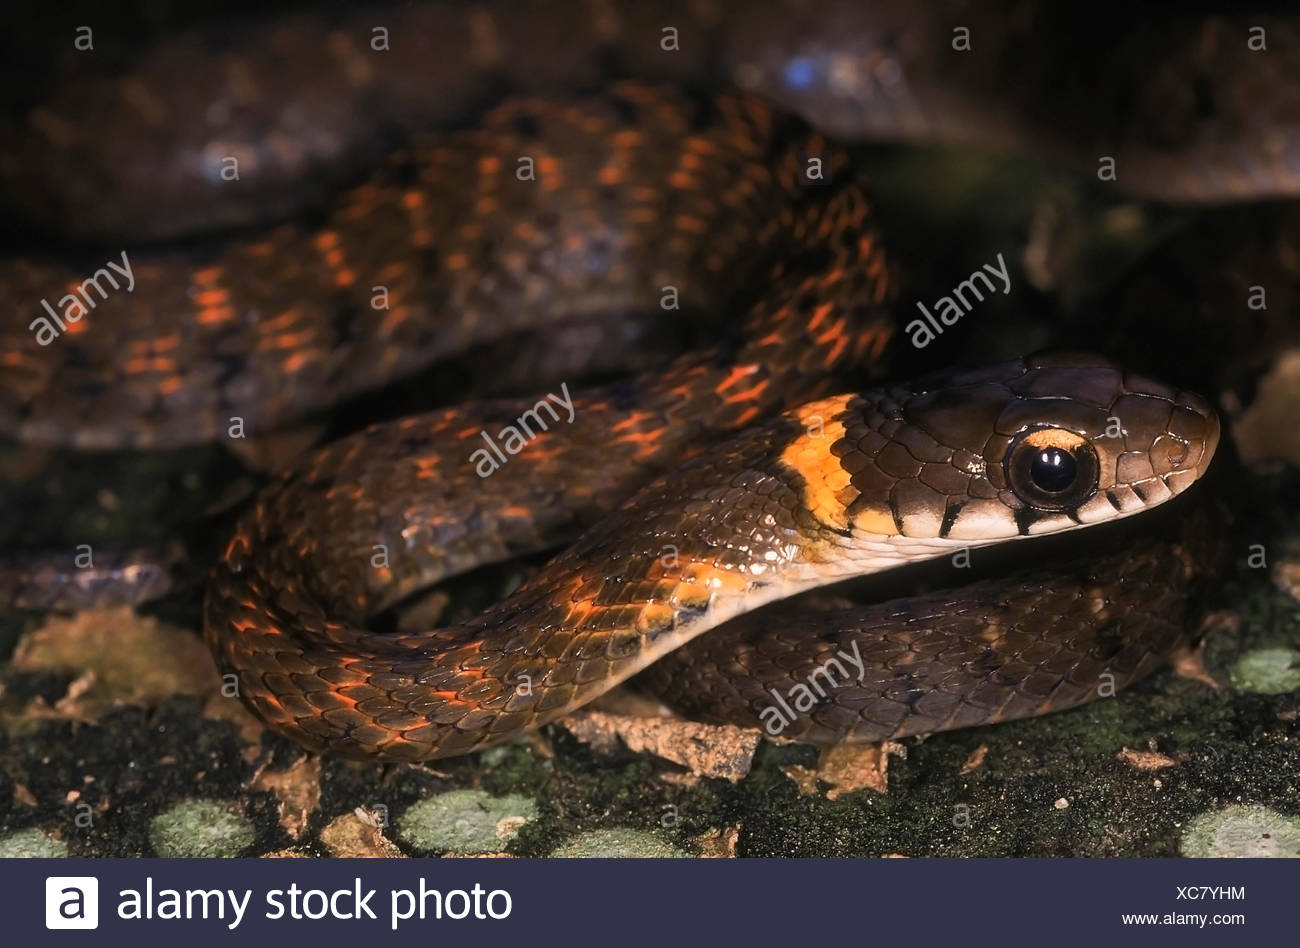 HIMALAYAN KEELBACK Rhabdophis himalayanus. Close up of head and neck. Adult from Changlang district, Arunachal Pradesh, India. - Stock Image